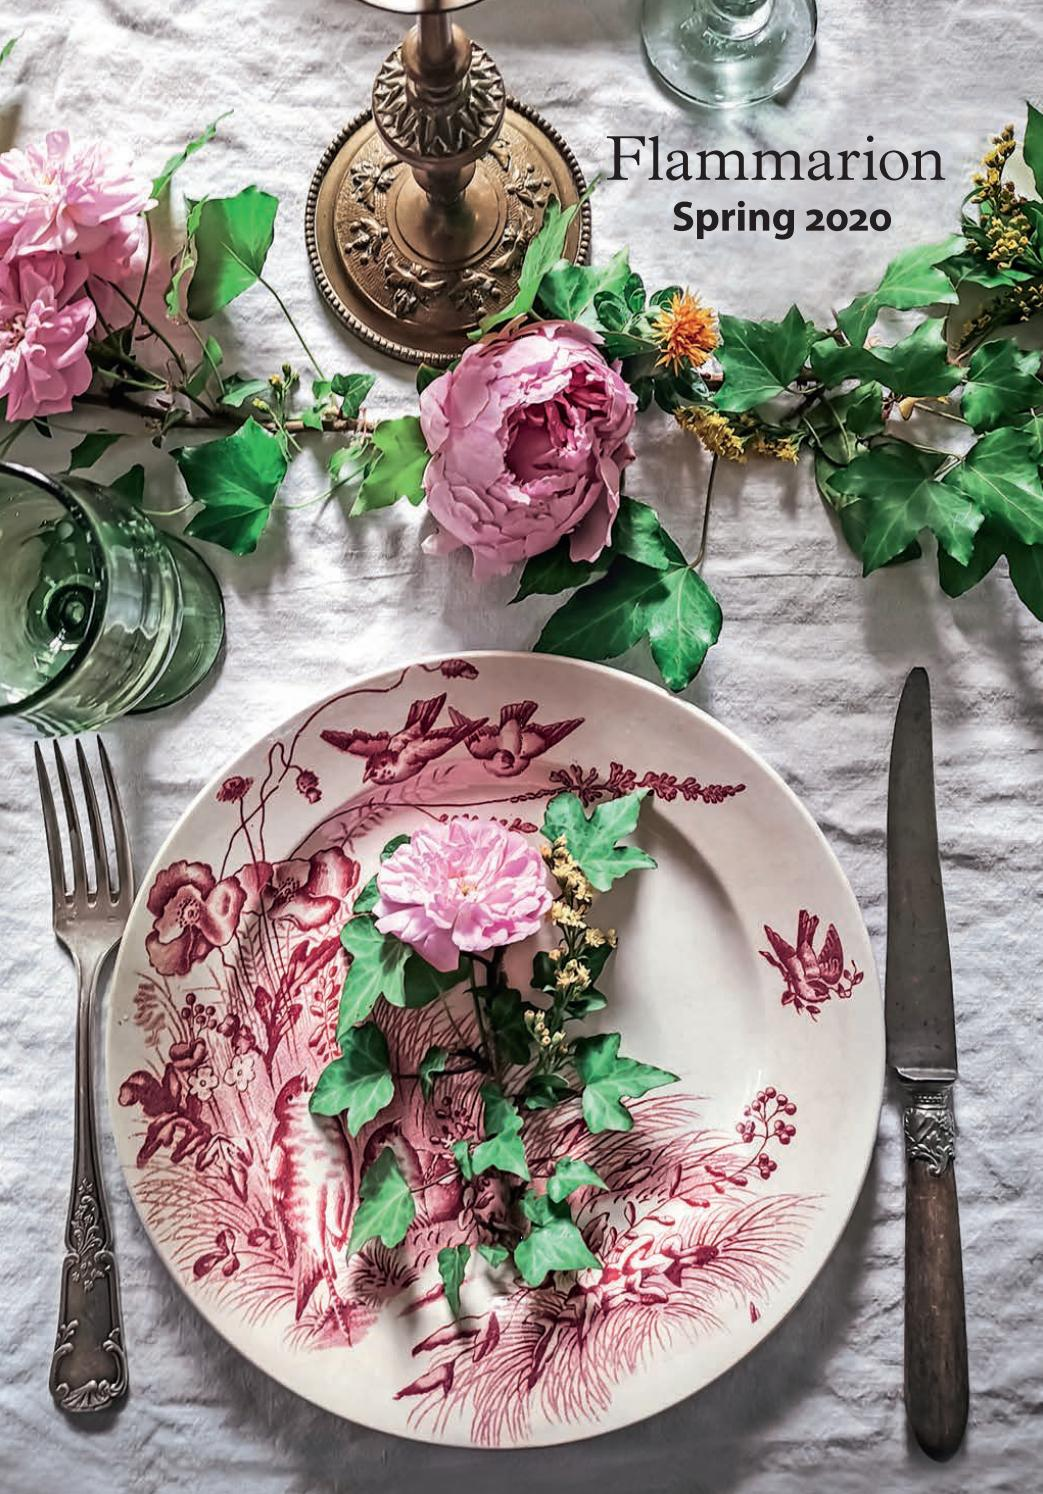 Flammarion Spring 2020 Catalogue By Flammarion Groupe Issuu